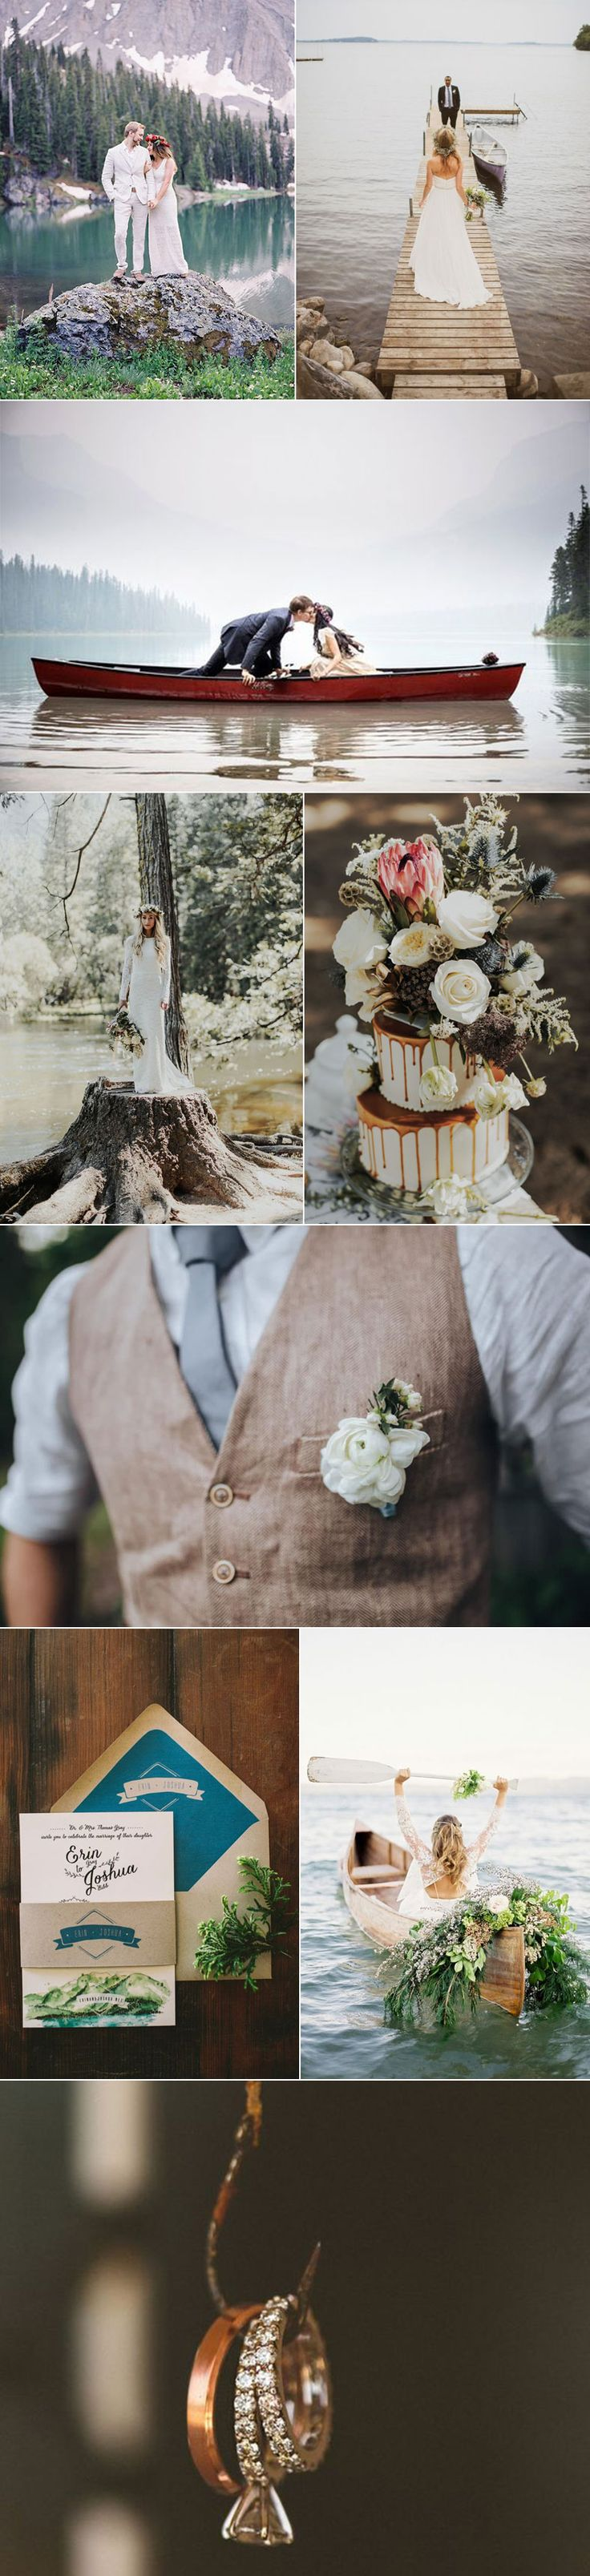 Tap into your wanderlust and embrace the all-encompassing beauty of an outdoor lake wedding.